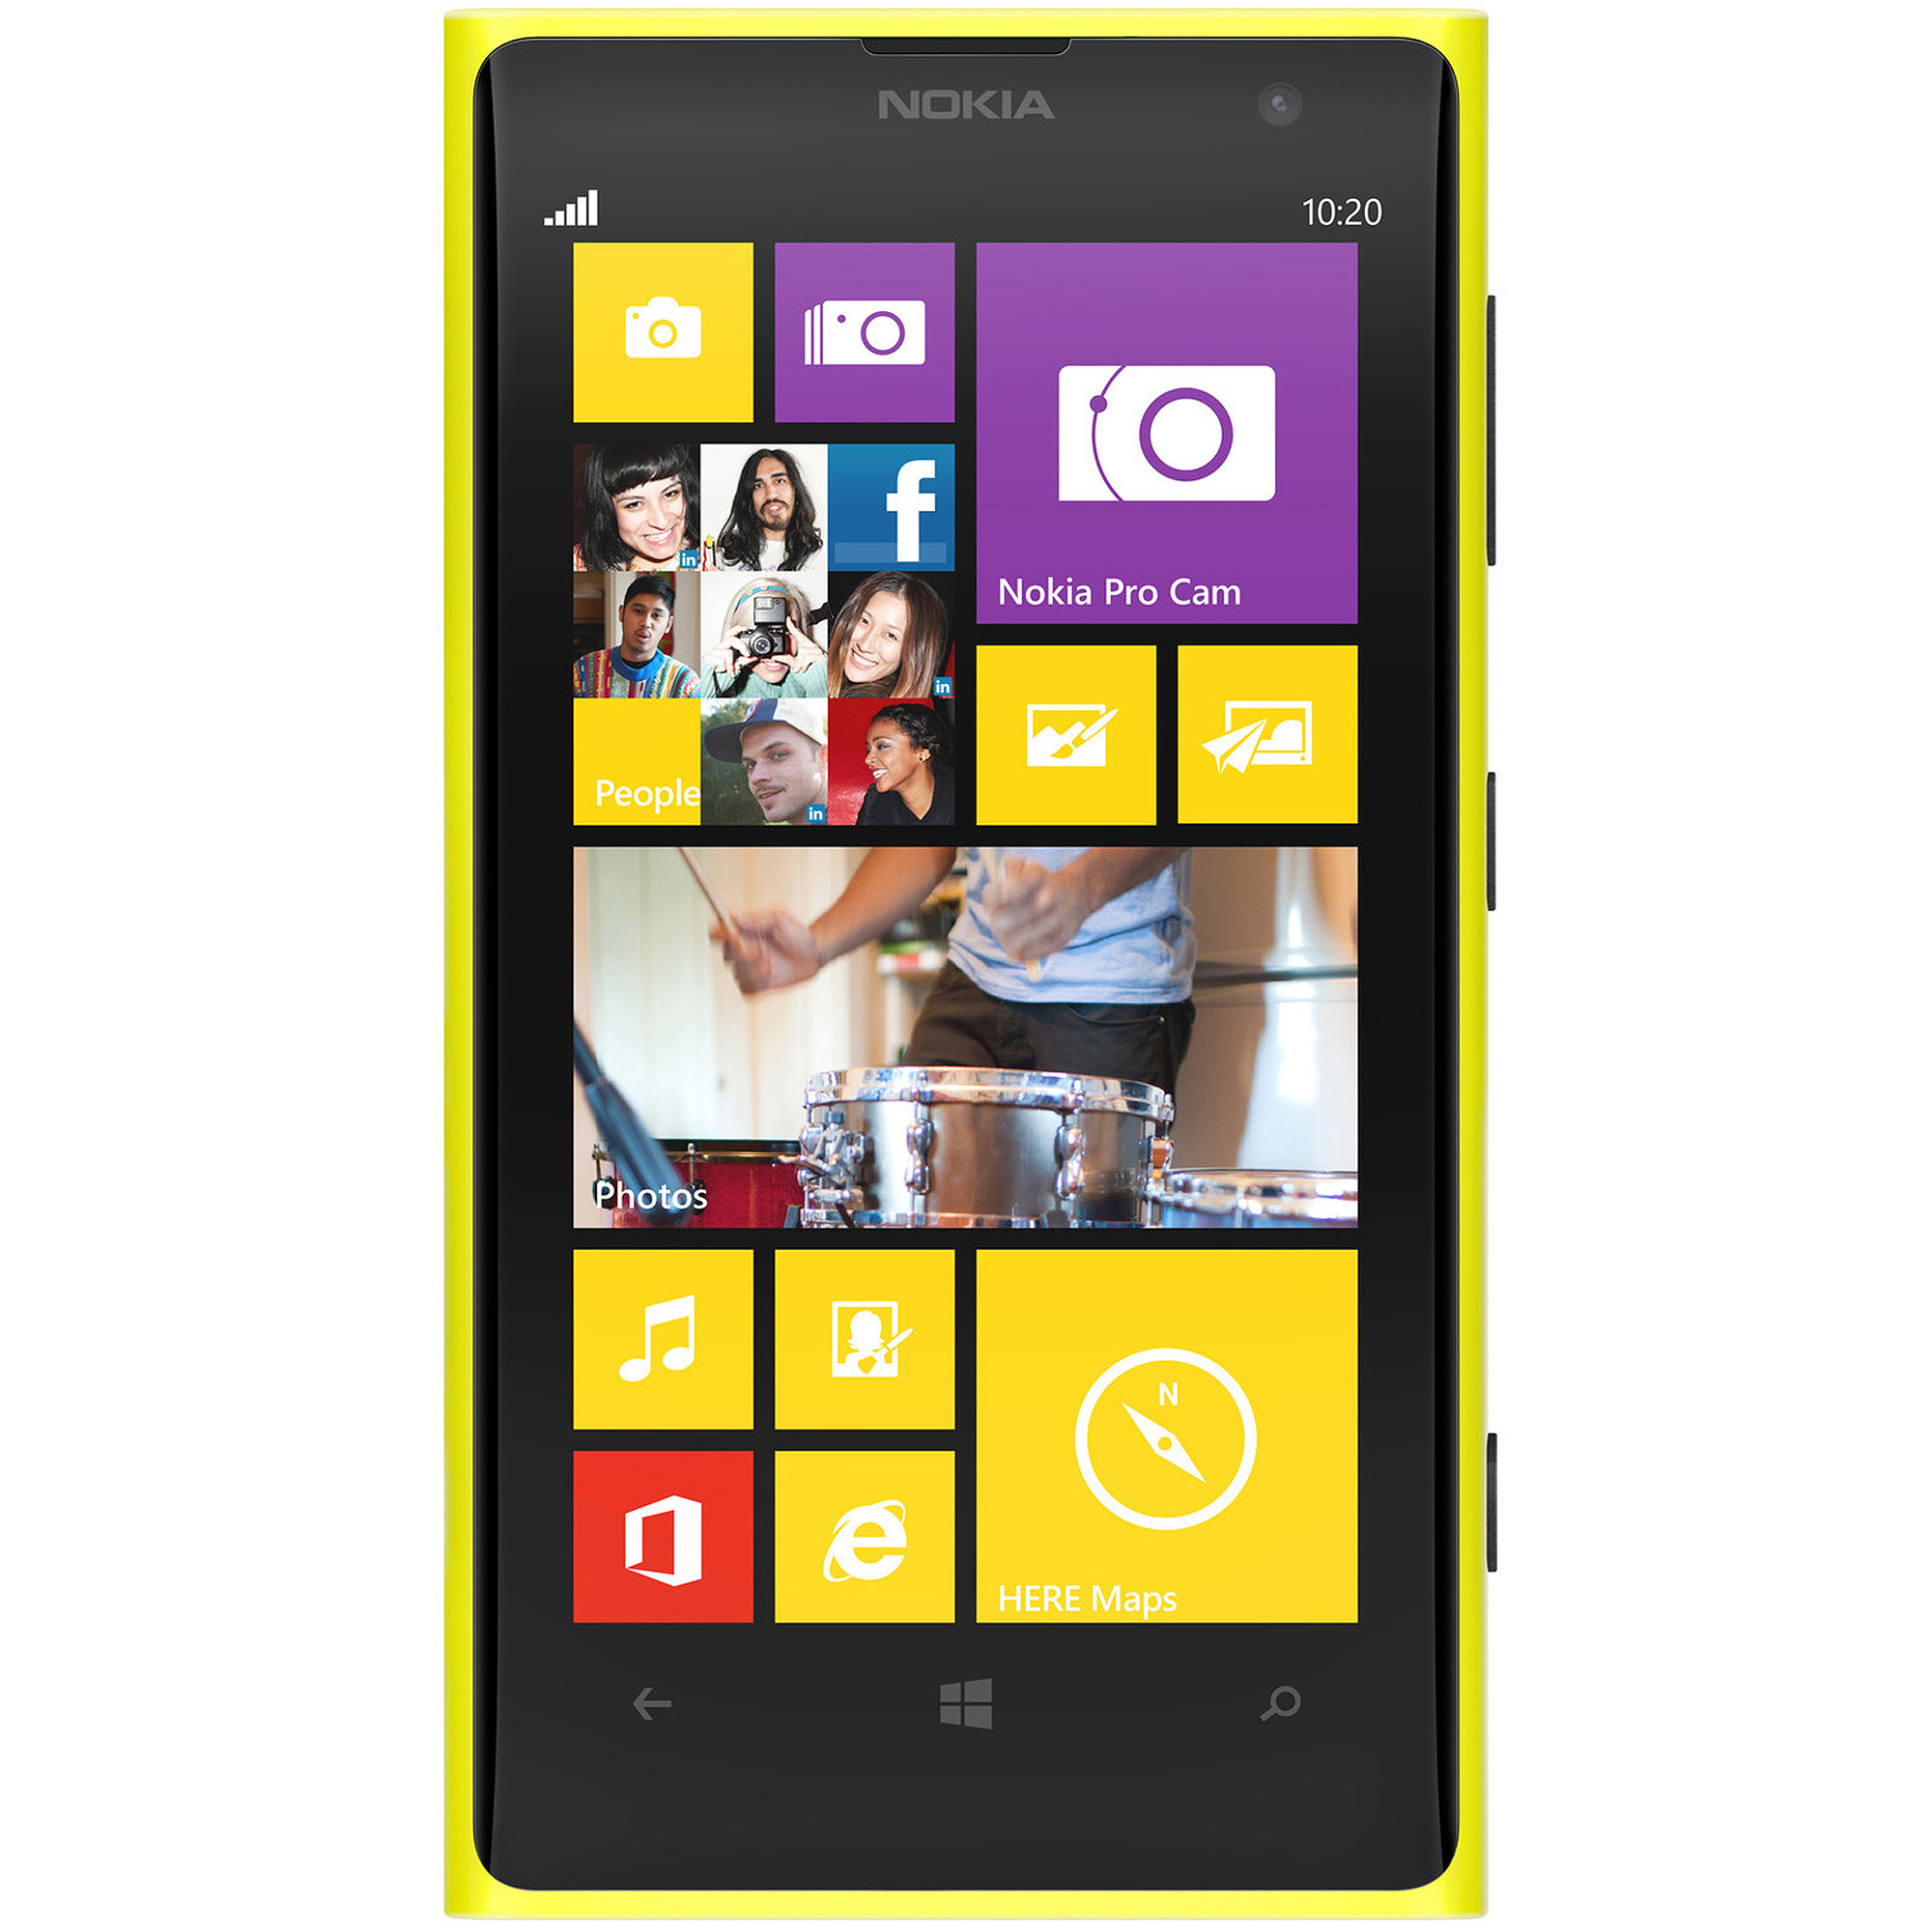 Nokia Lumia 1020 AT&T Windows 8 Smartphone, Yellow